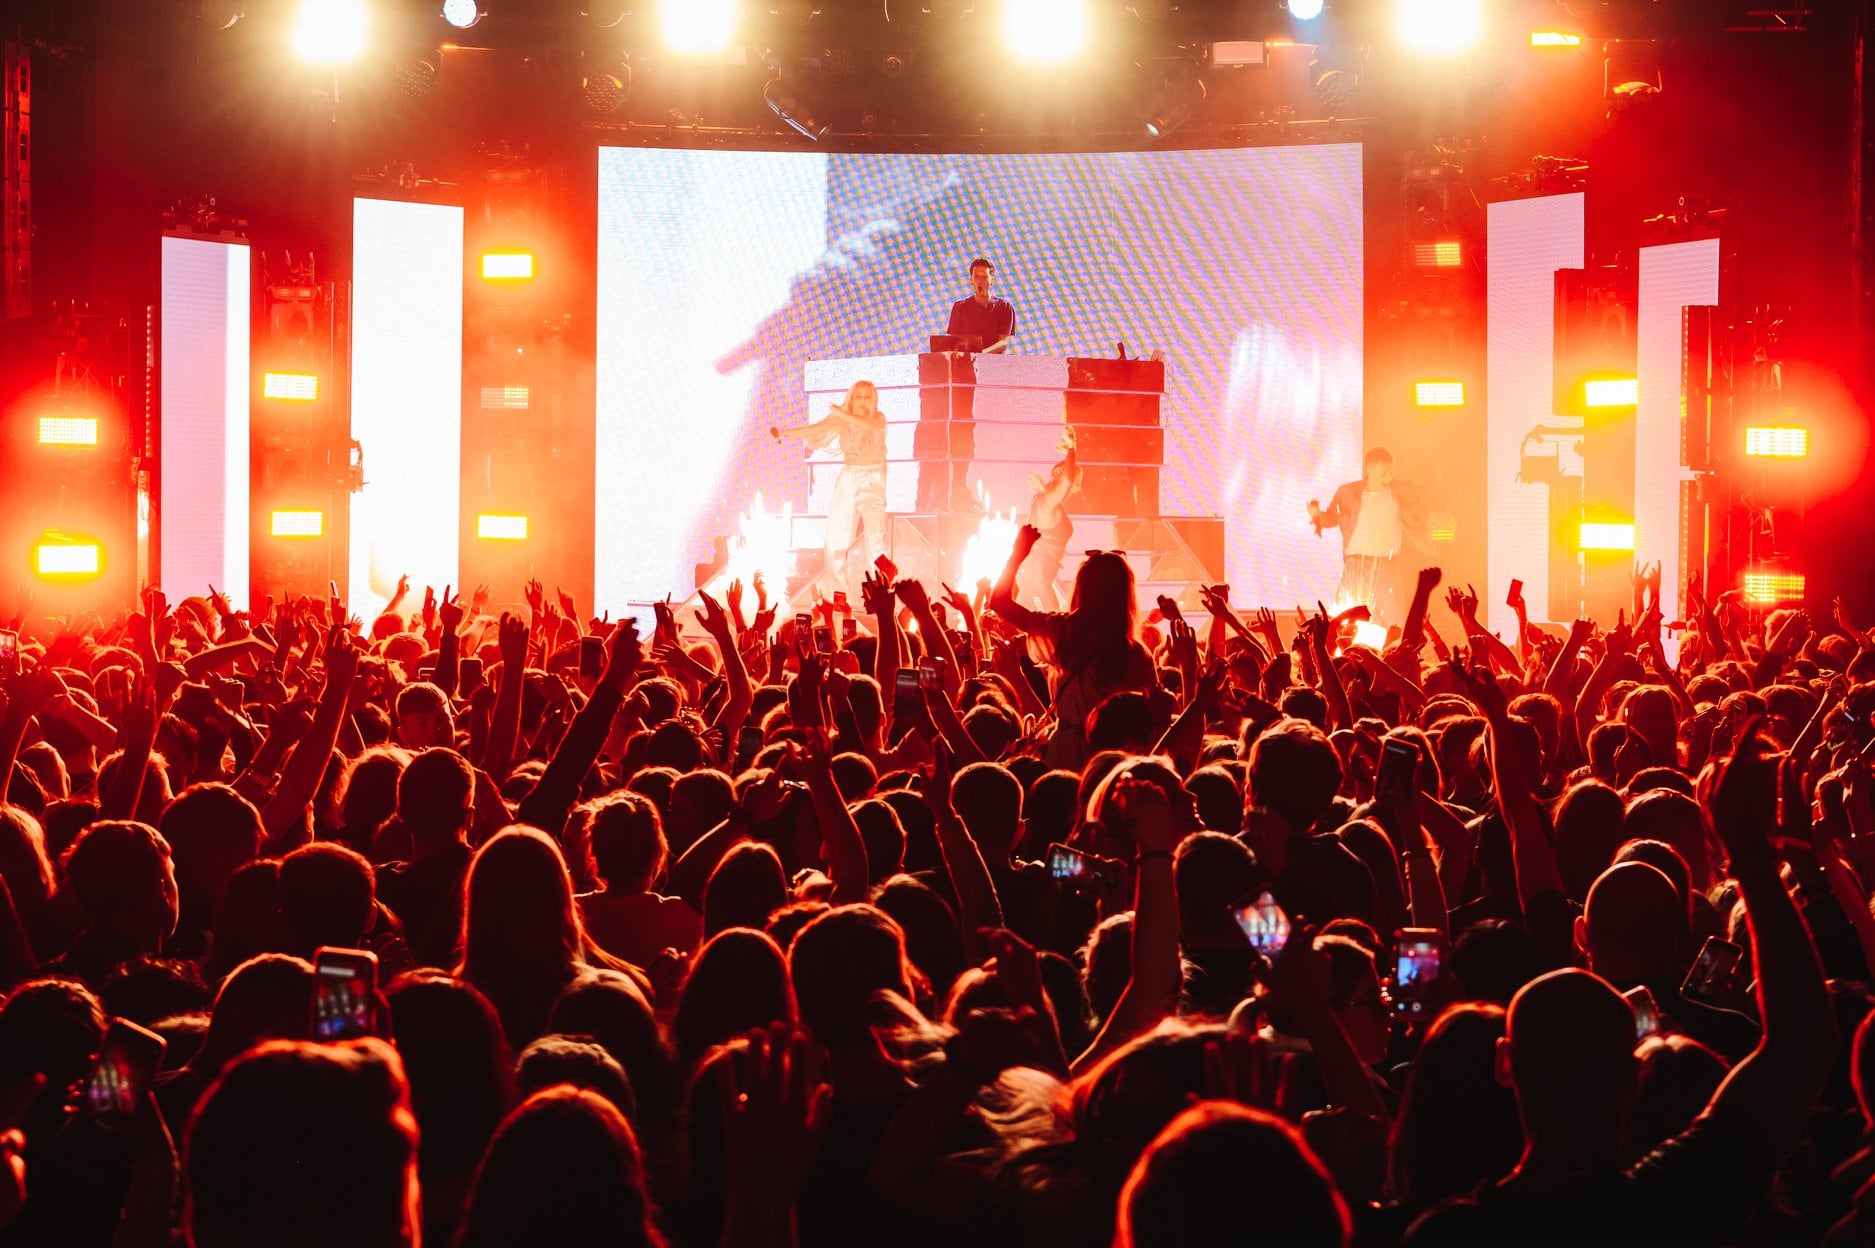 A vibrant crowd watching a musicians perform at Manchester Academy